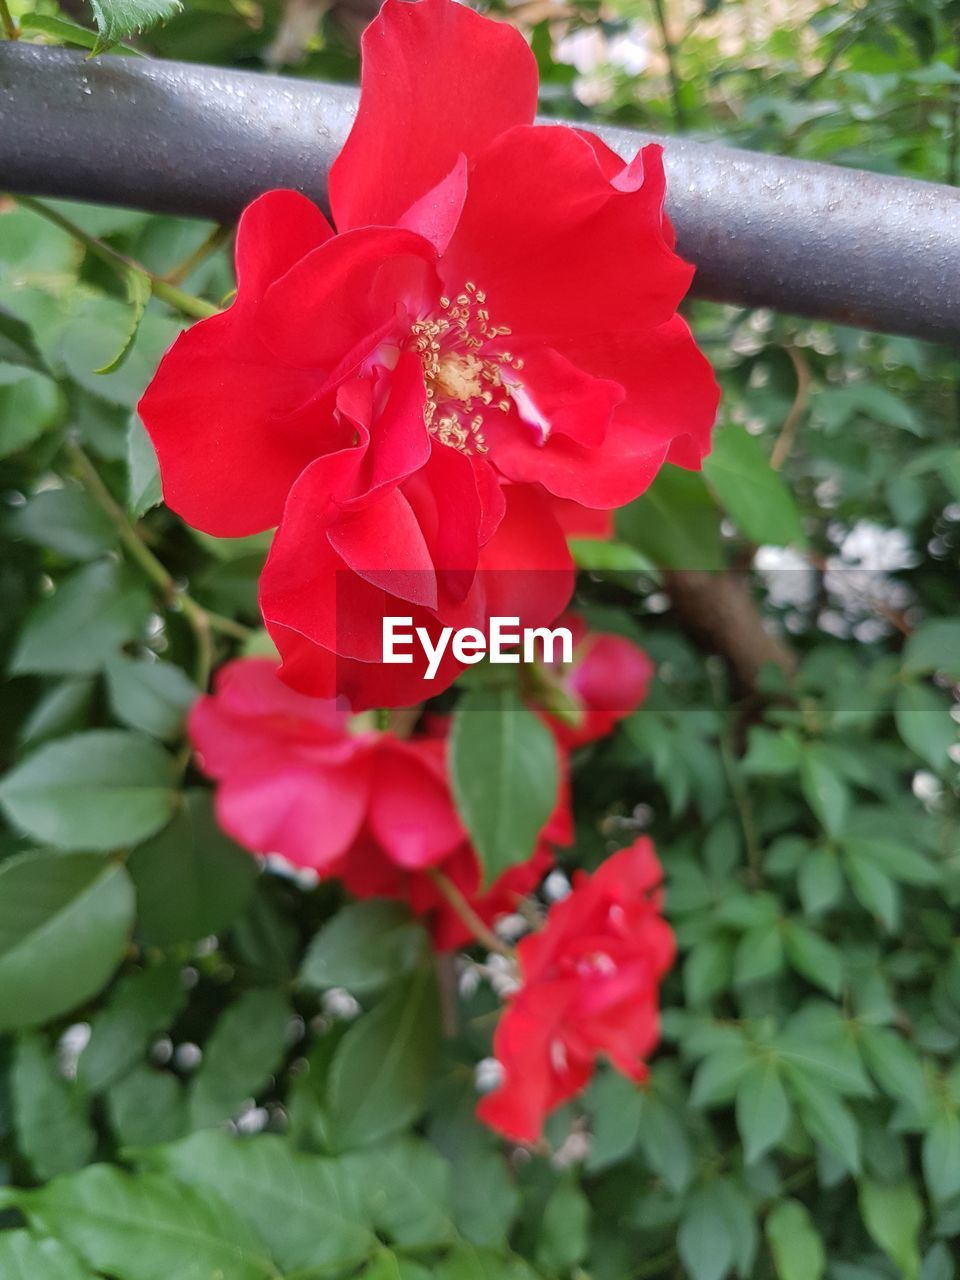 flower, flowering plant, plant, beauty in nature, freshness, growth, fragility, petal, vulnerability, close-up, flower head, inflorescence, day, nature, no people, red, plant part, leaf, outdoors, green color